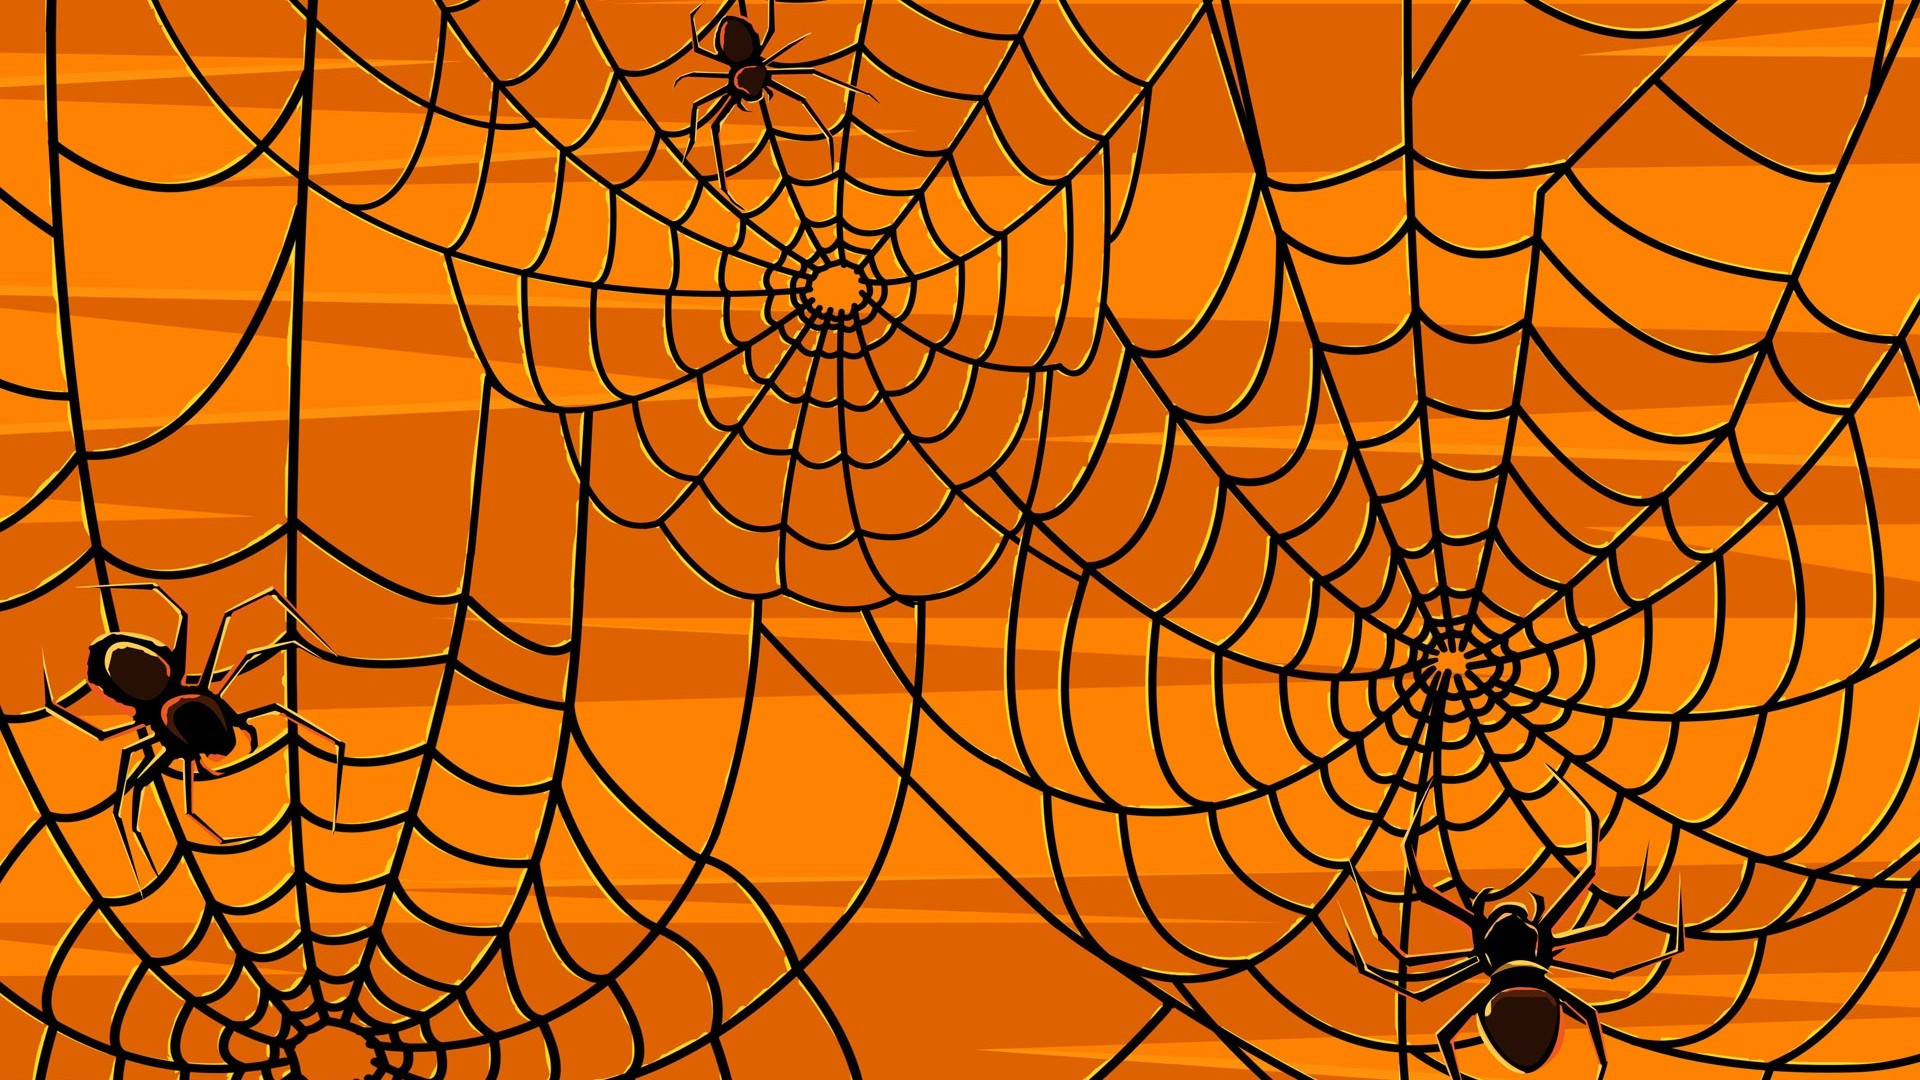 1920x1080 Halloween Spider Webs - Wallpaper #37575